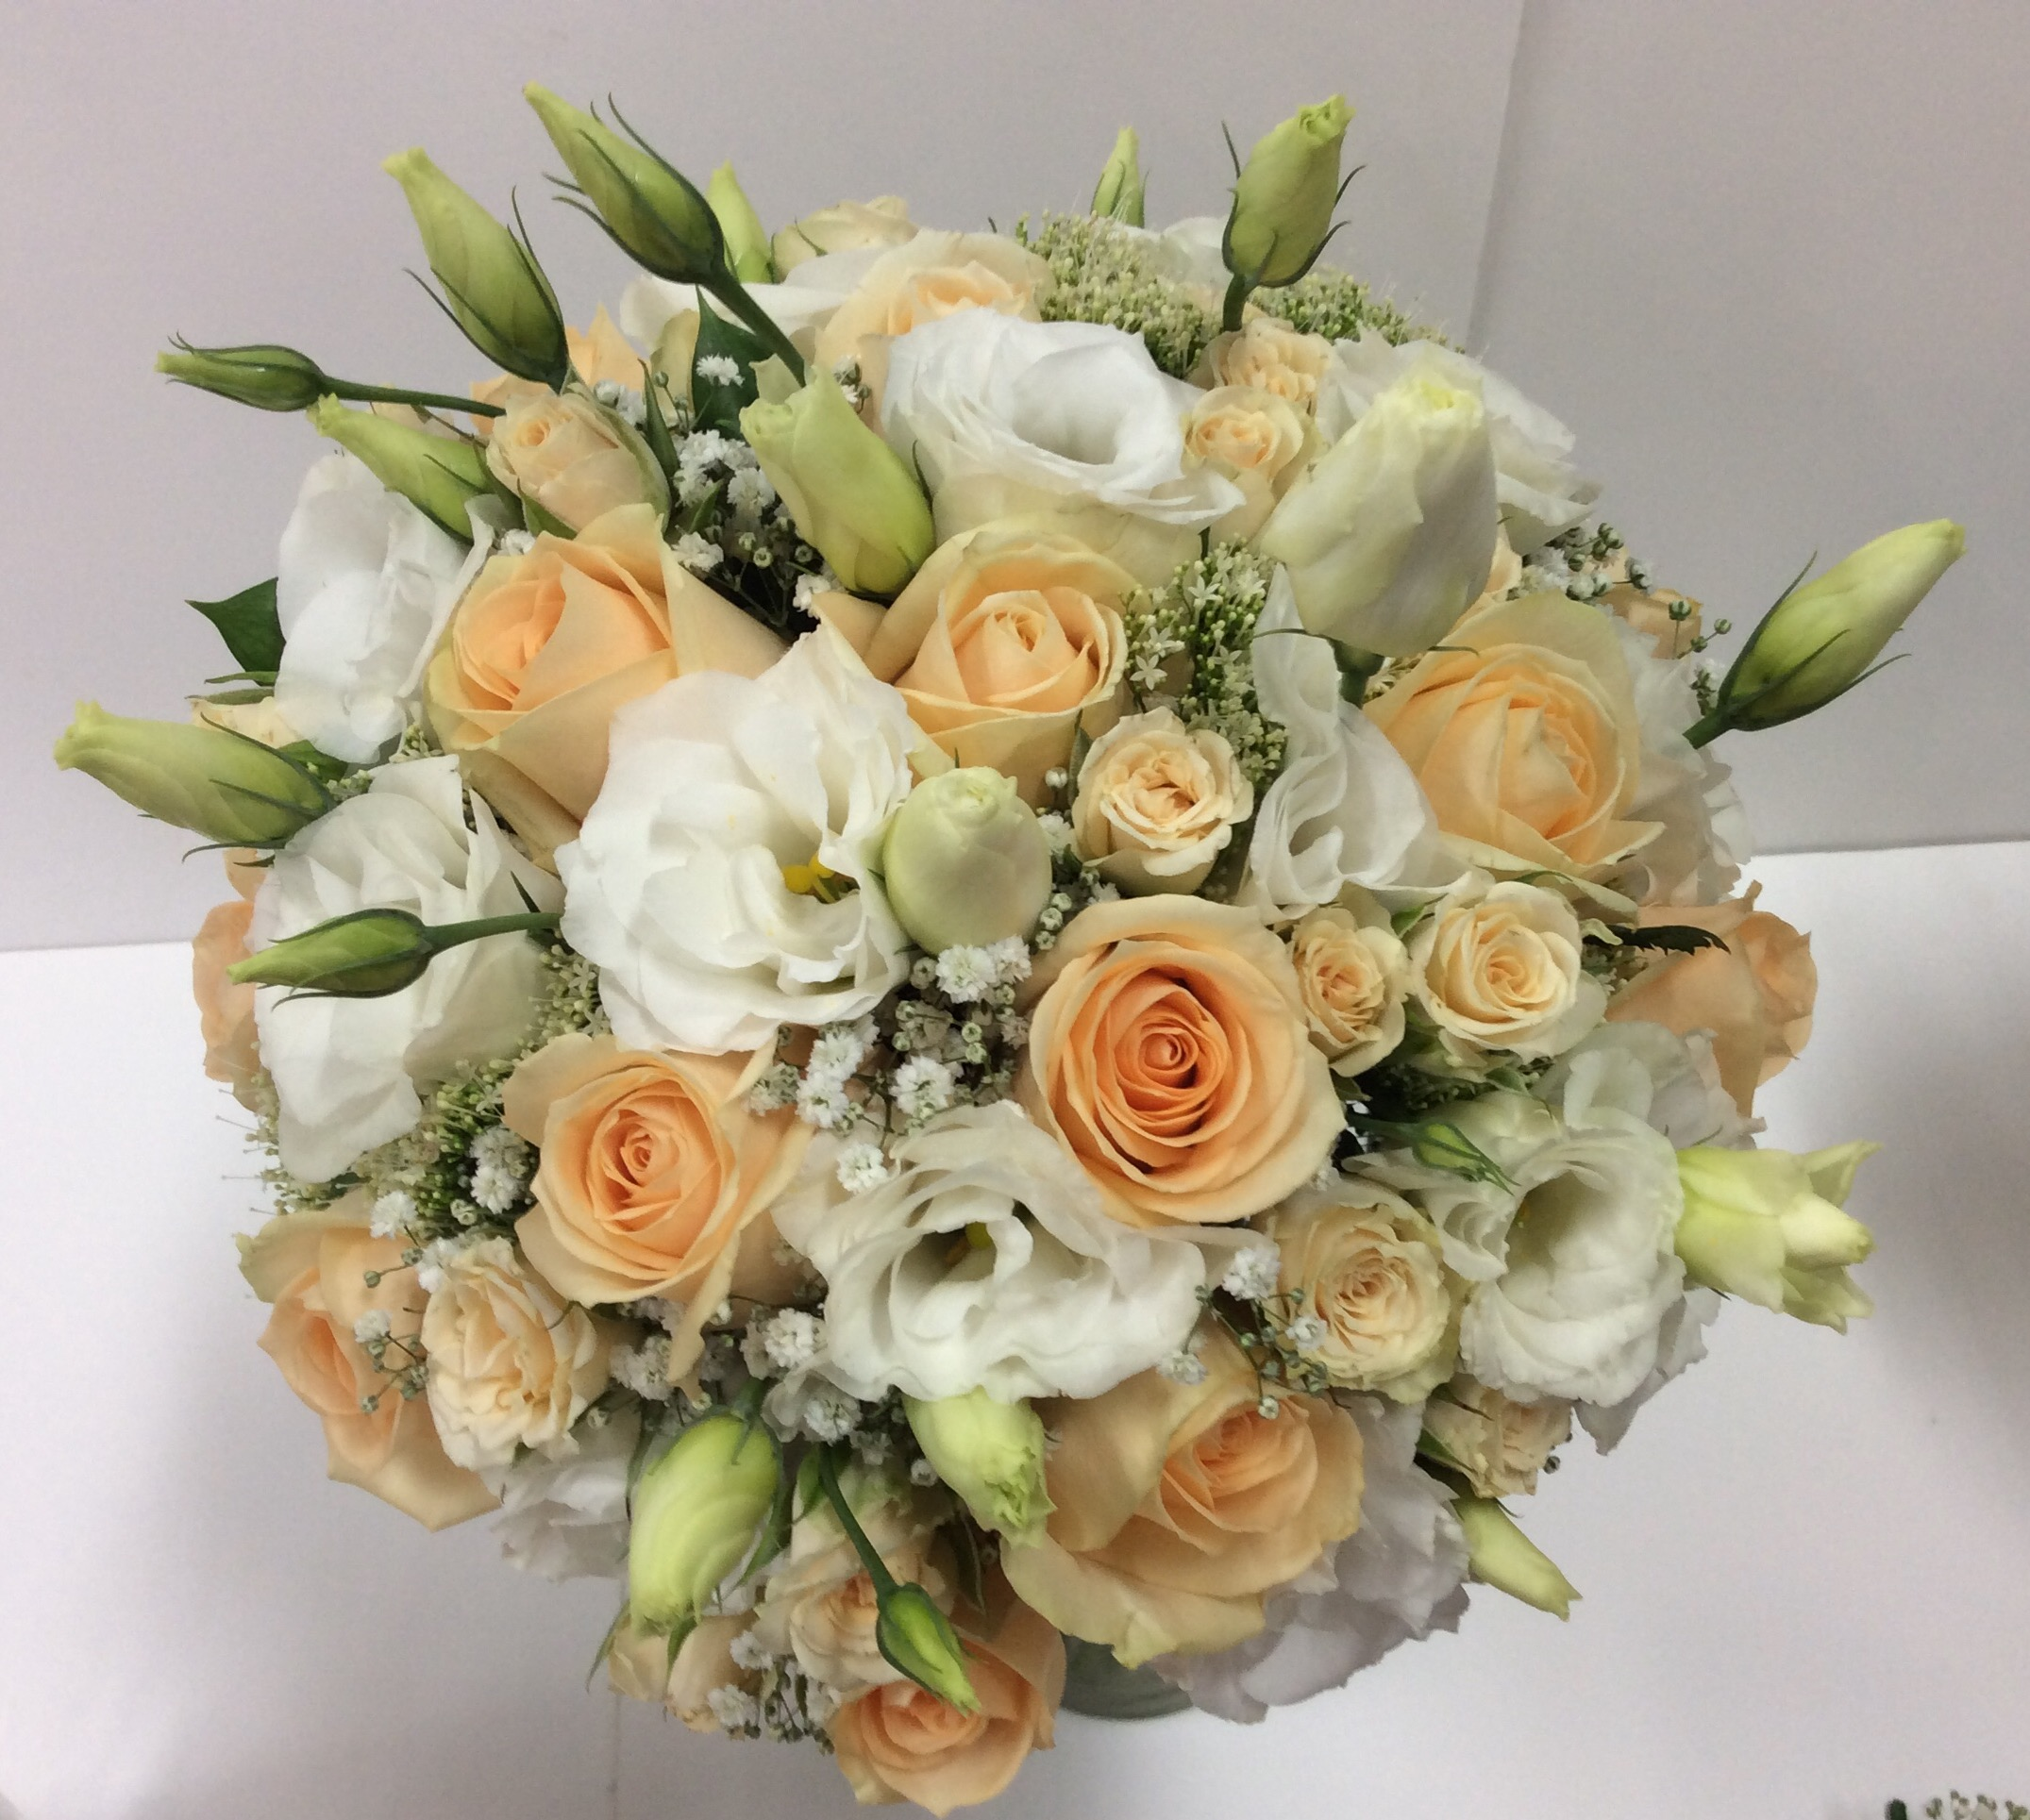 Wedding Cream And Apricot Bridal Bouquet Flower Wholesalers Takapuna